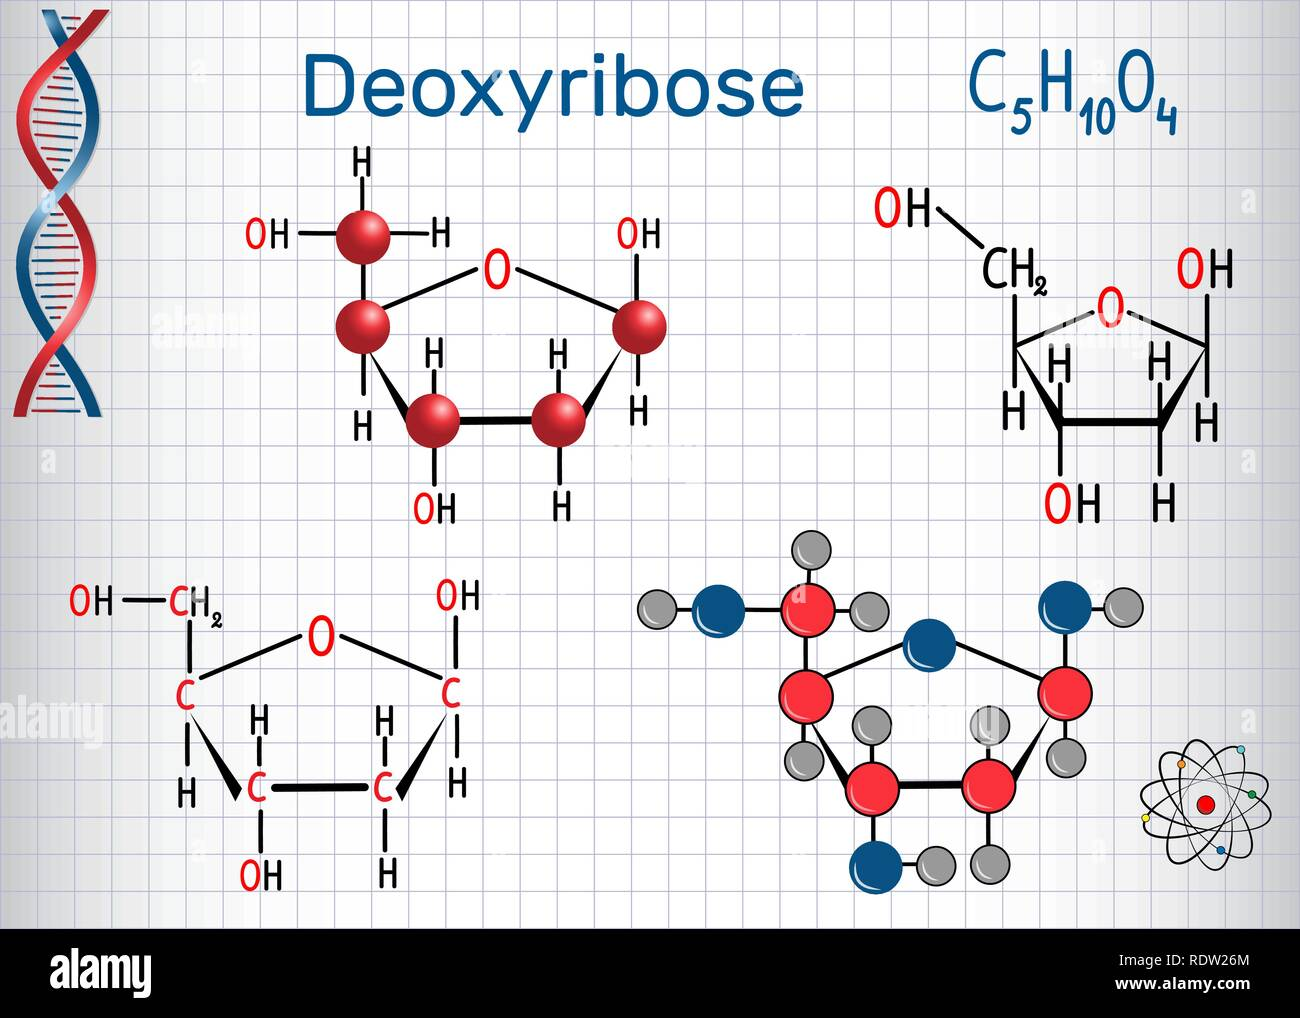 Deoxyribose molecule, it is a monosaccharide (deoxy sugar), it forms part of the backbone of DNA. Structural chemical formula and molecule model. Shee - Stock Image